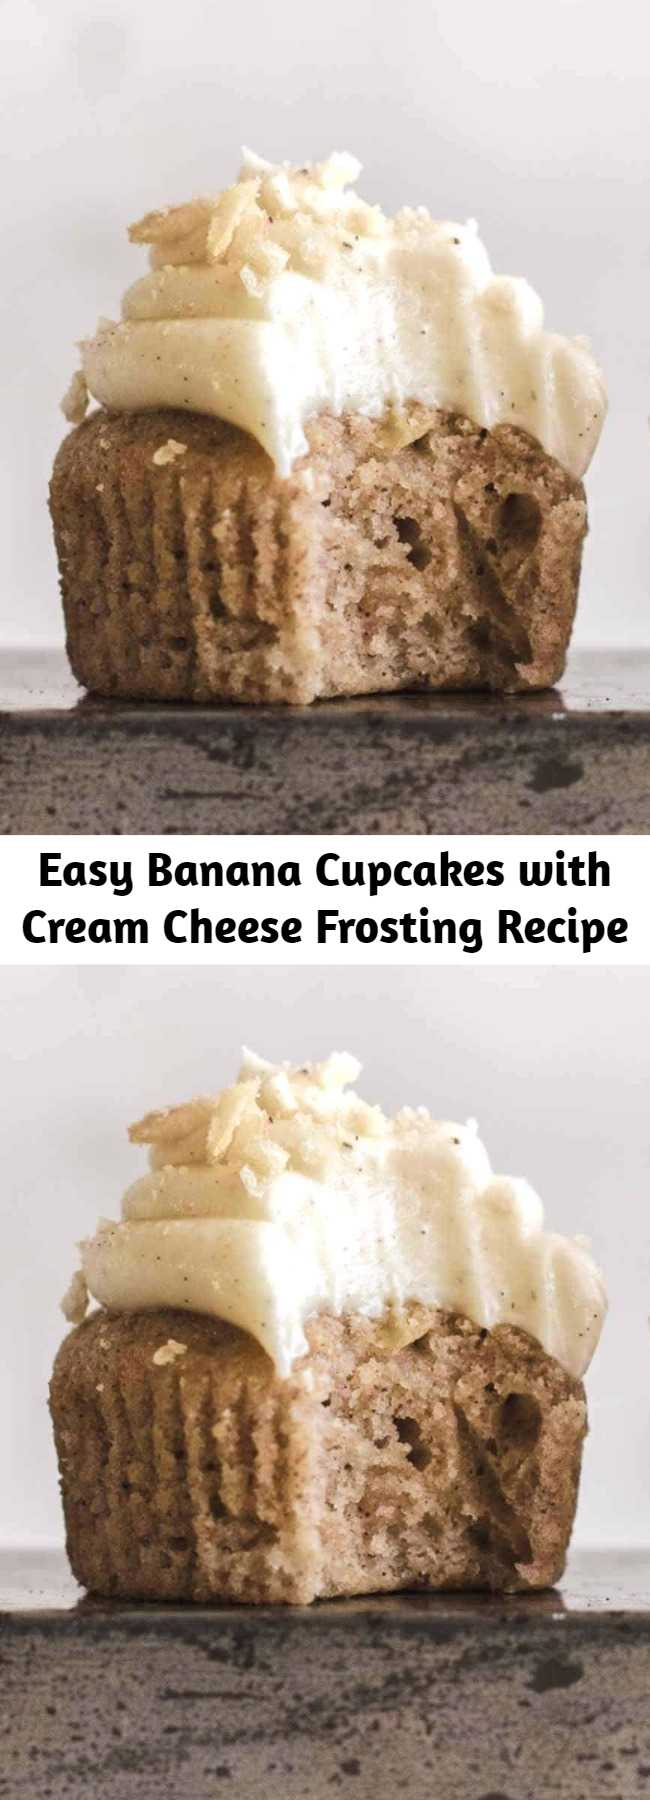 Easy Banana Cupcakes with Cream Cheese Frosting Recipe - These super delicious banana cupcakes topped with cream cheese frosting are very easy to make. Made from scratch with fresh bananas. Soft, moist, and creamy.